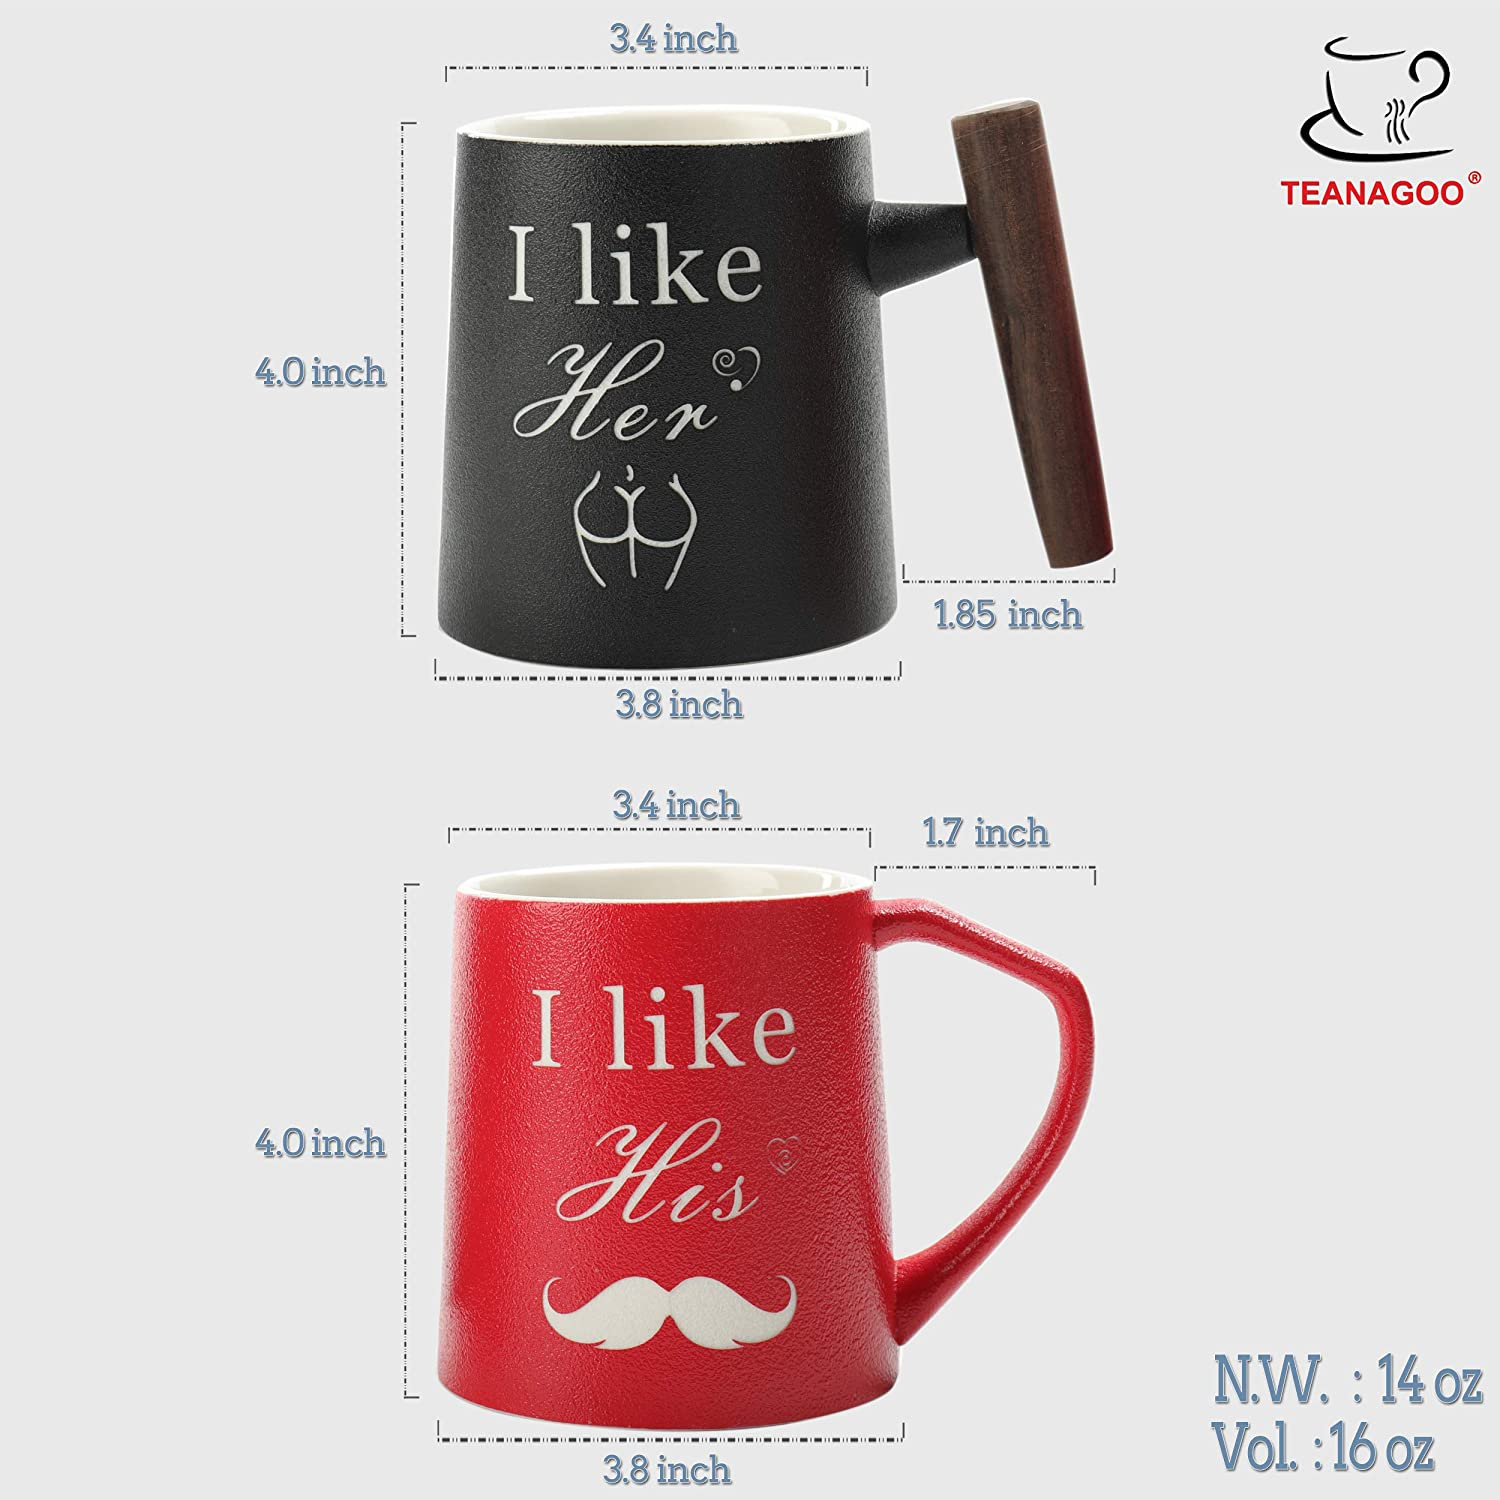 Tea 16 Ounce Gifts for parents for Coffee TEANAGOO DM01 Set of 2 Cocoa NewParents Pregnancy Announcement Baby shower Gifts BEST DAD /& MOM EVER Mugs